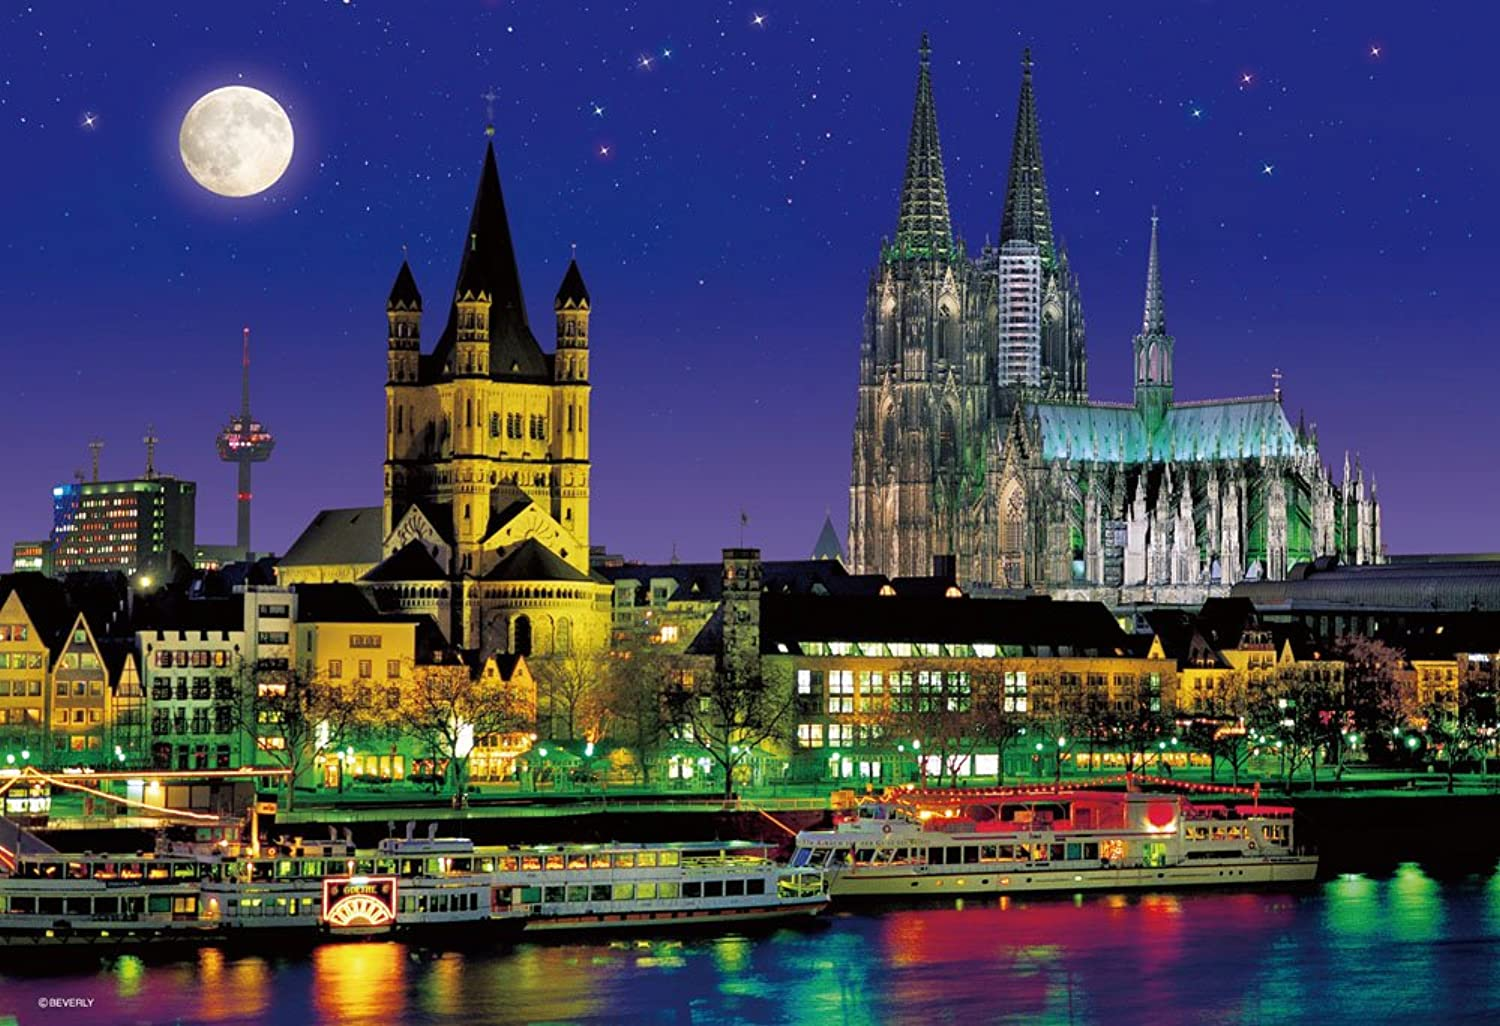 M71858 Cologne cathedral of 1000 micro piece moonlit night (japan import)